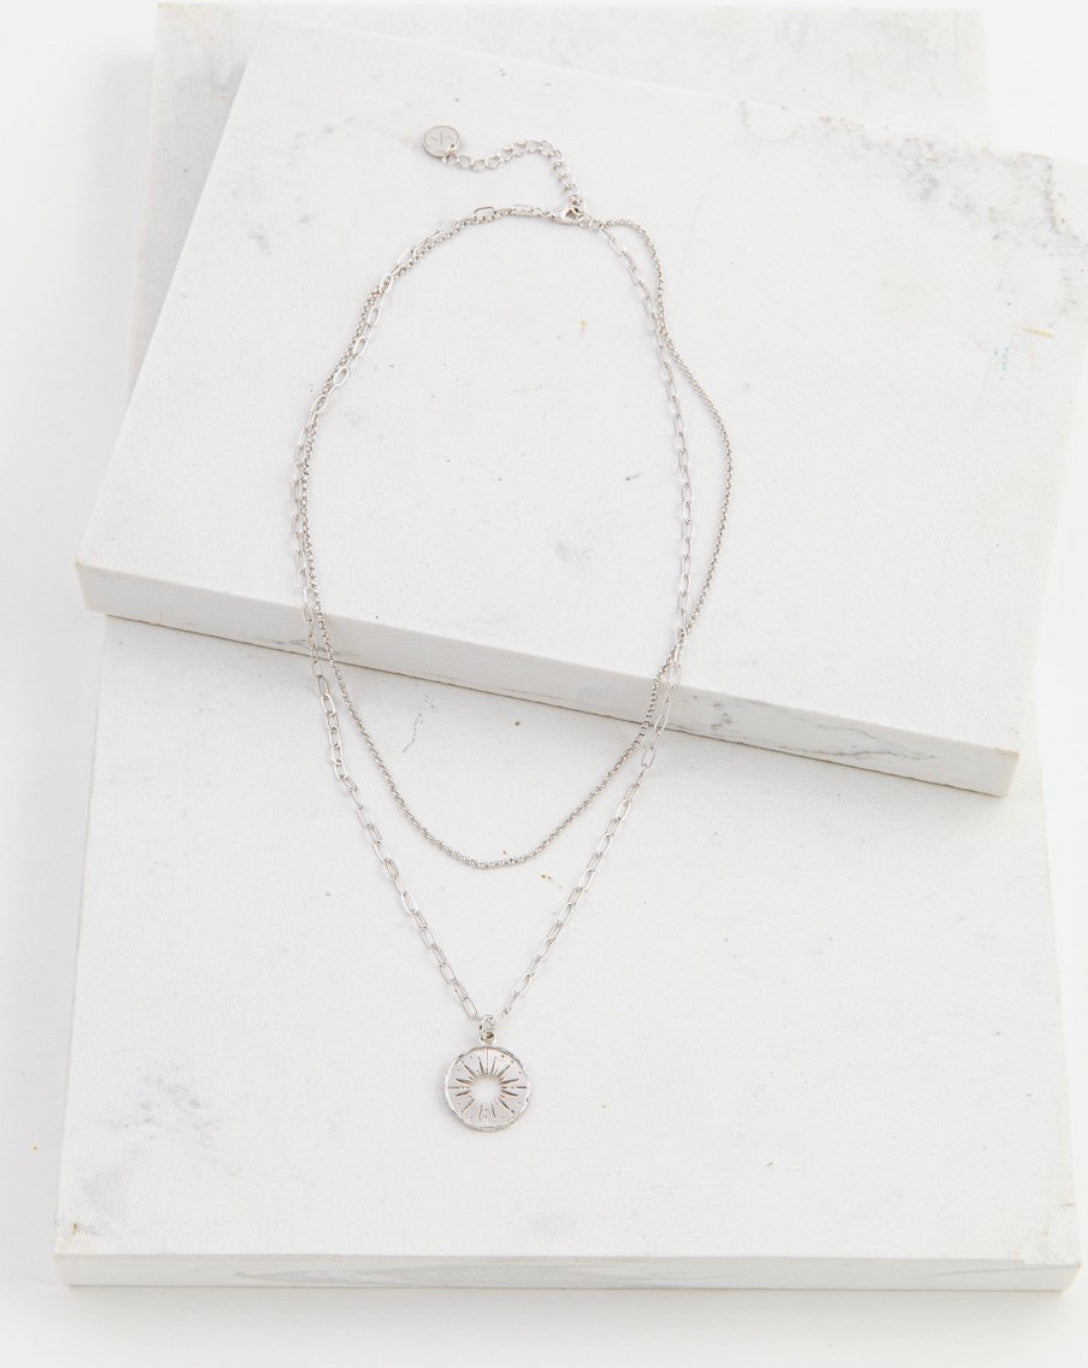 Lover's Tempo Sunburst Layered Necklace